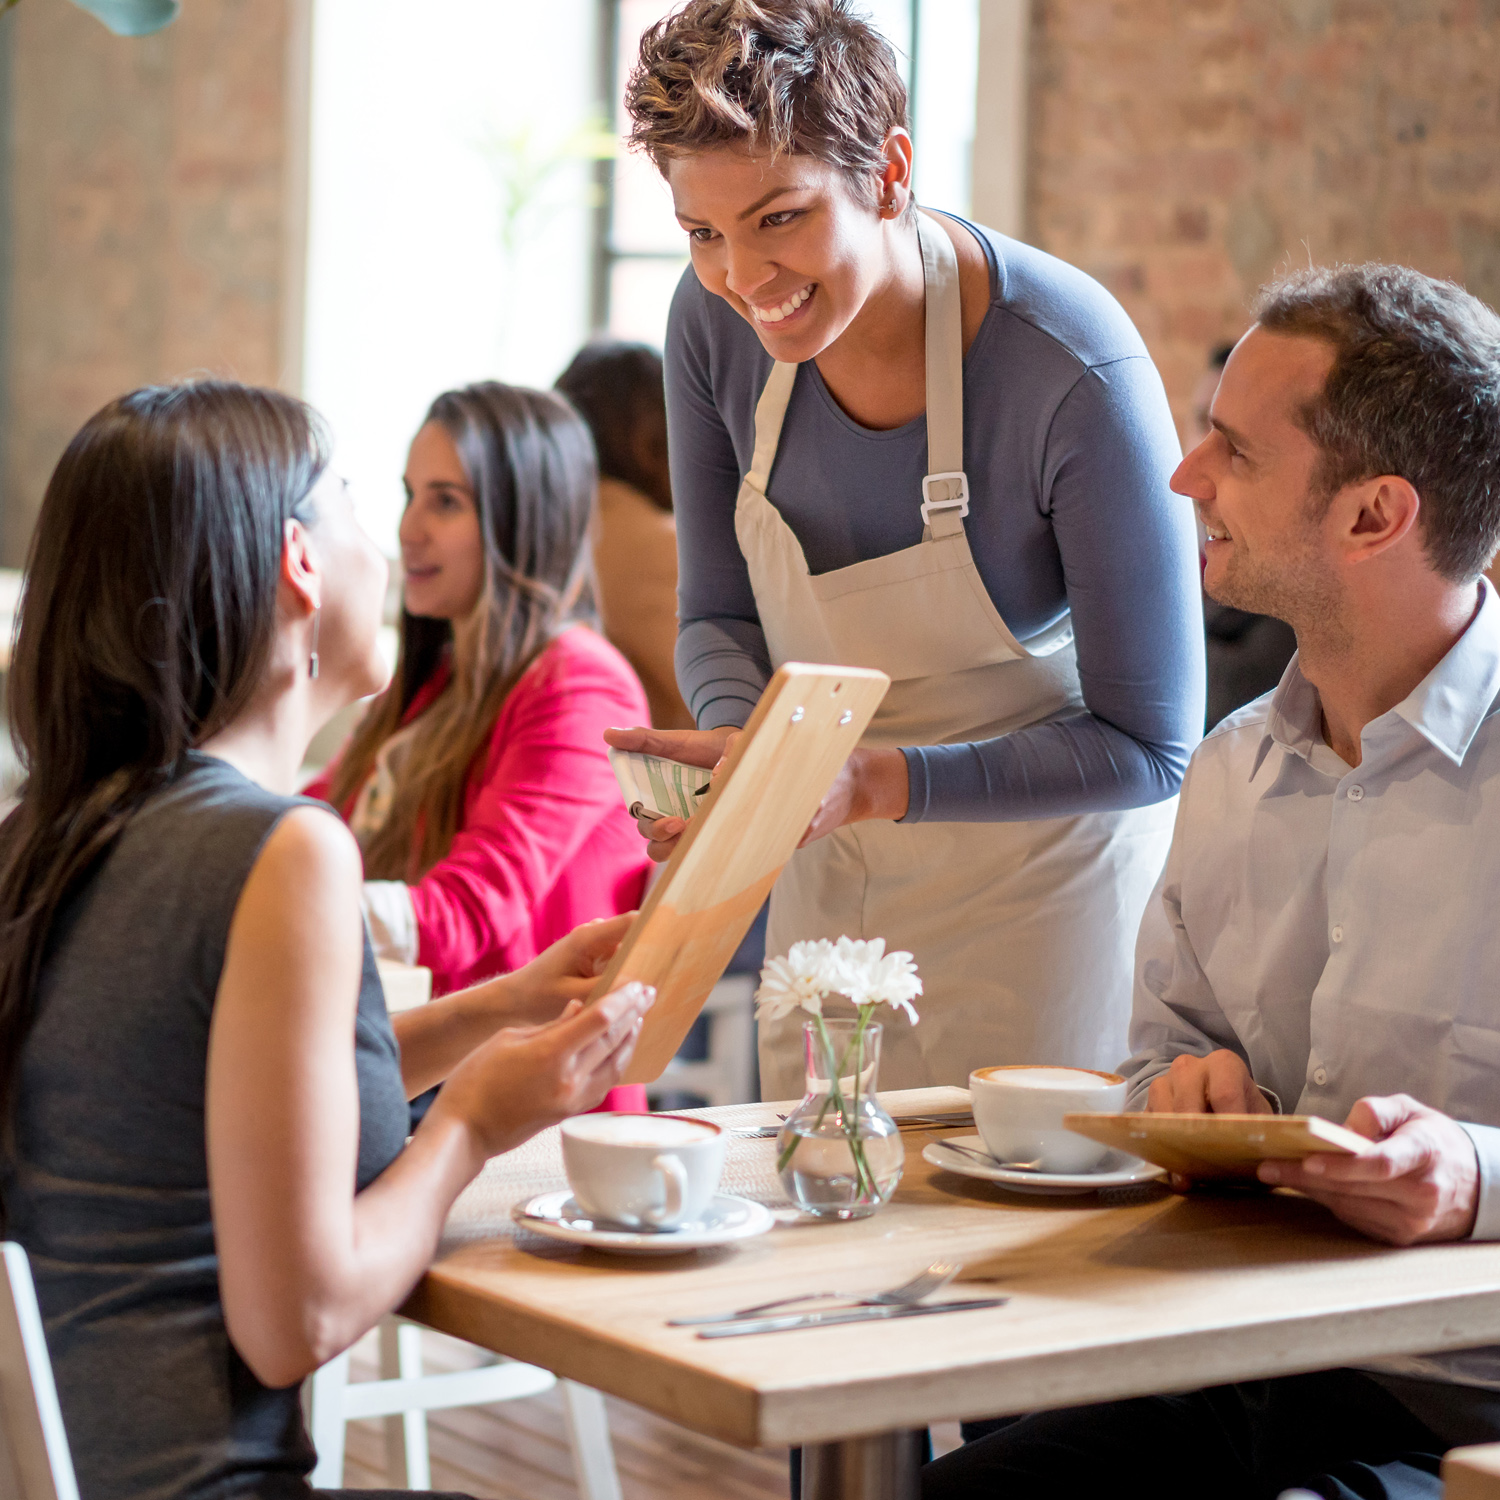 Smiling server taking order from couple at table-for-two in small café